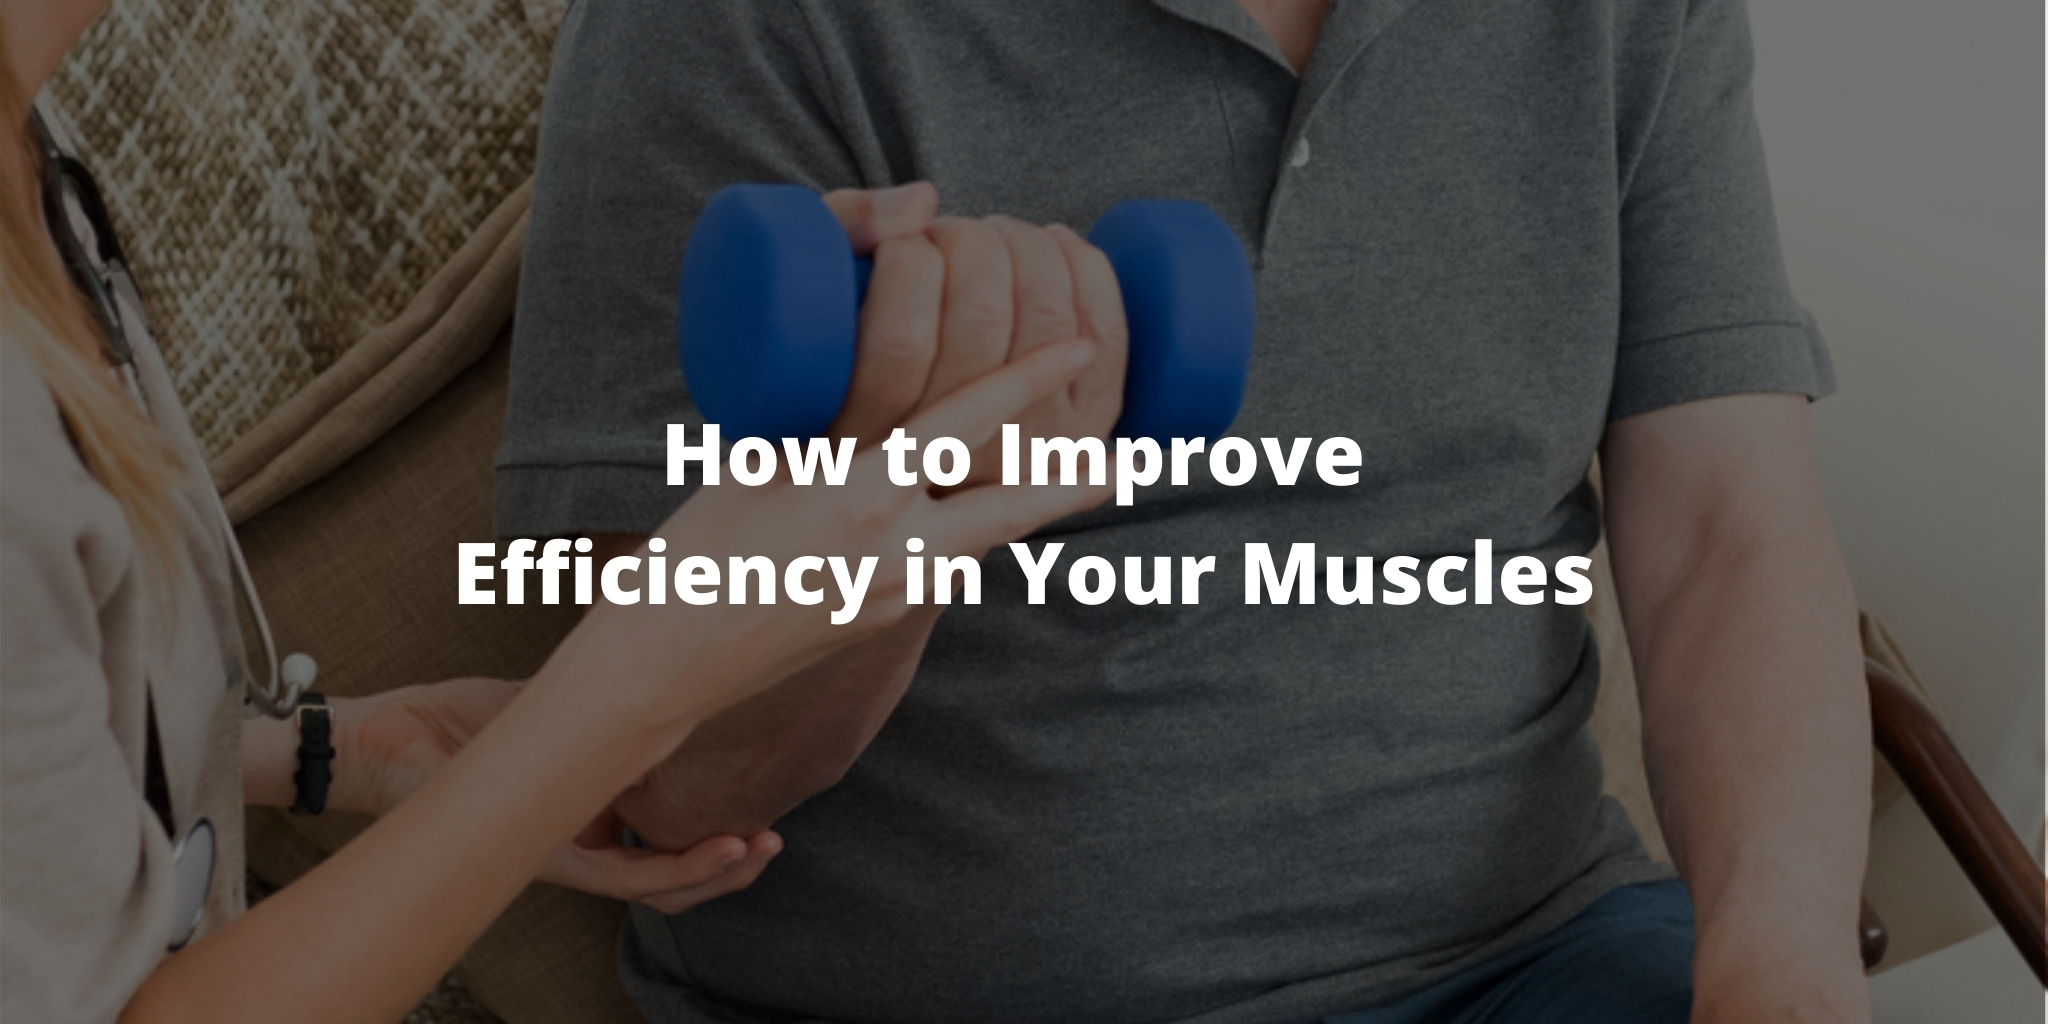 How to Improve Efficiency in Your Muscles